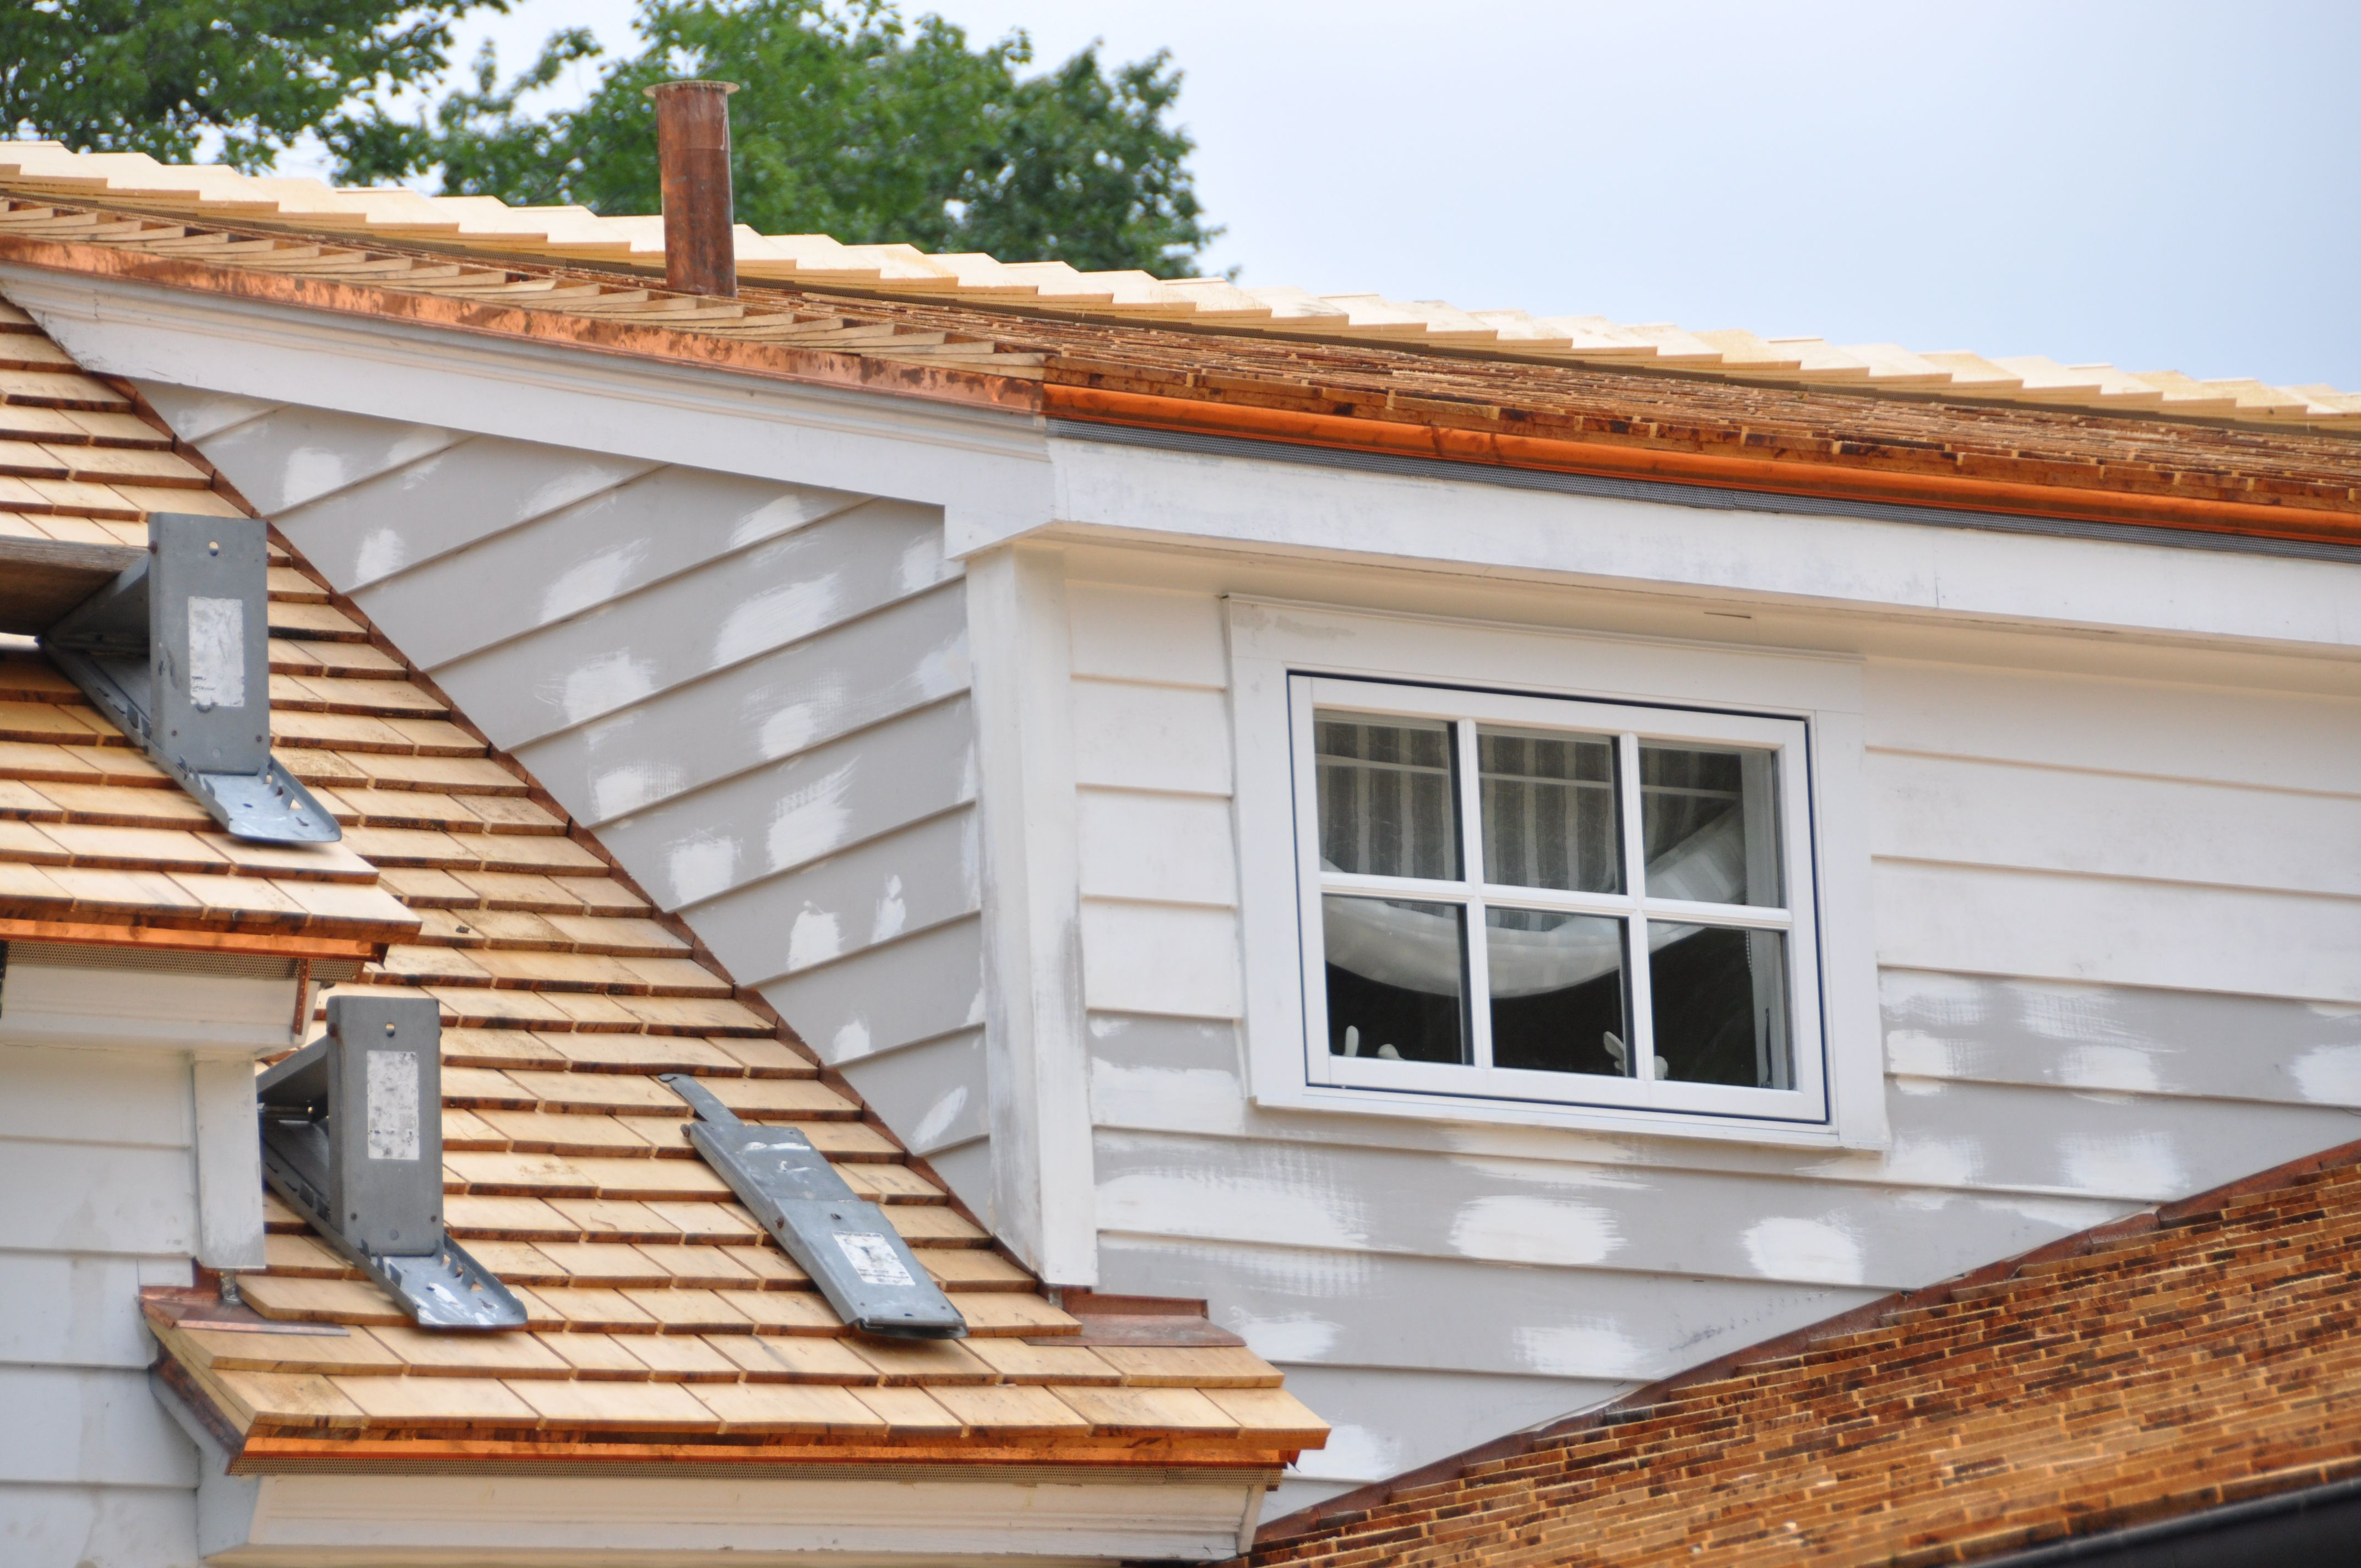 Cedar Shake Roof 7 Frequently Asked Questions And Answers Verrone Roofing Cedar Shake Roof Copper House Cedar Shakes